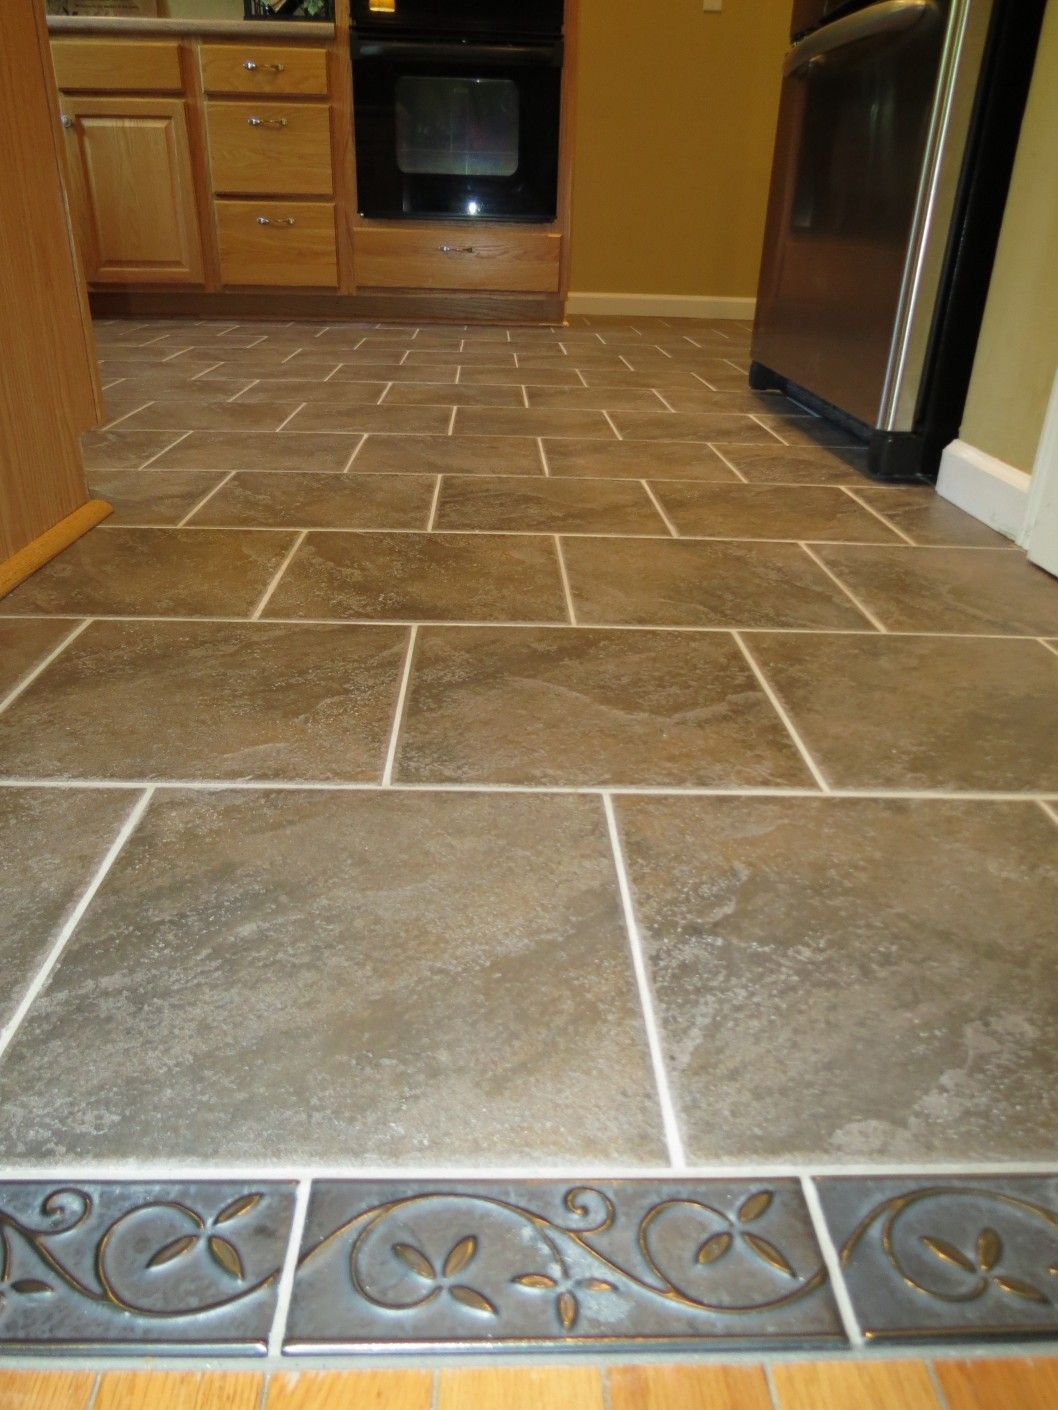 Decoration, Of Kitchen Tile Floor With Tiles To Go Grey Ceramic ...